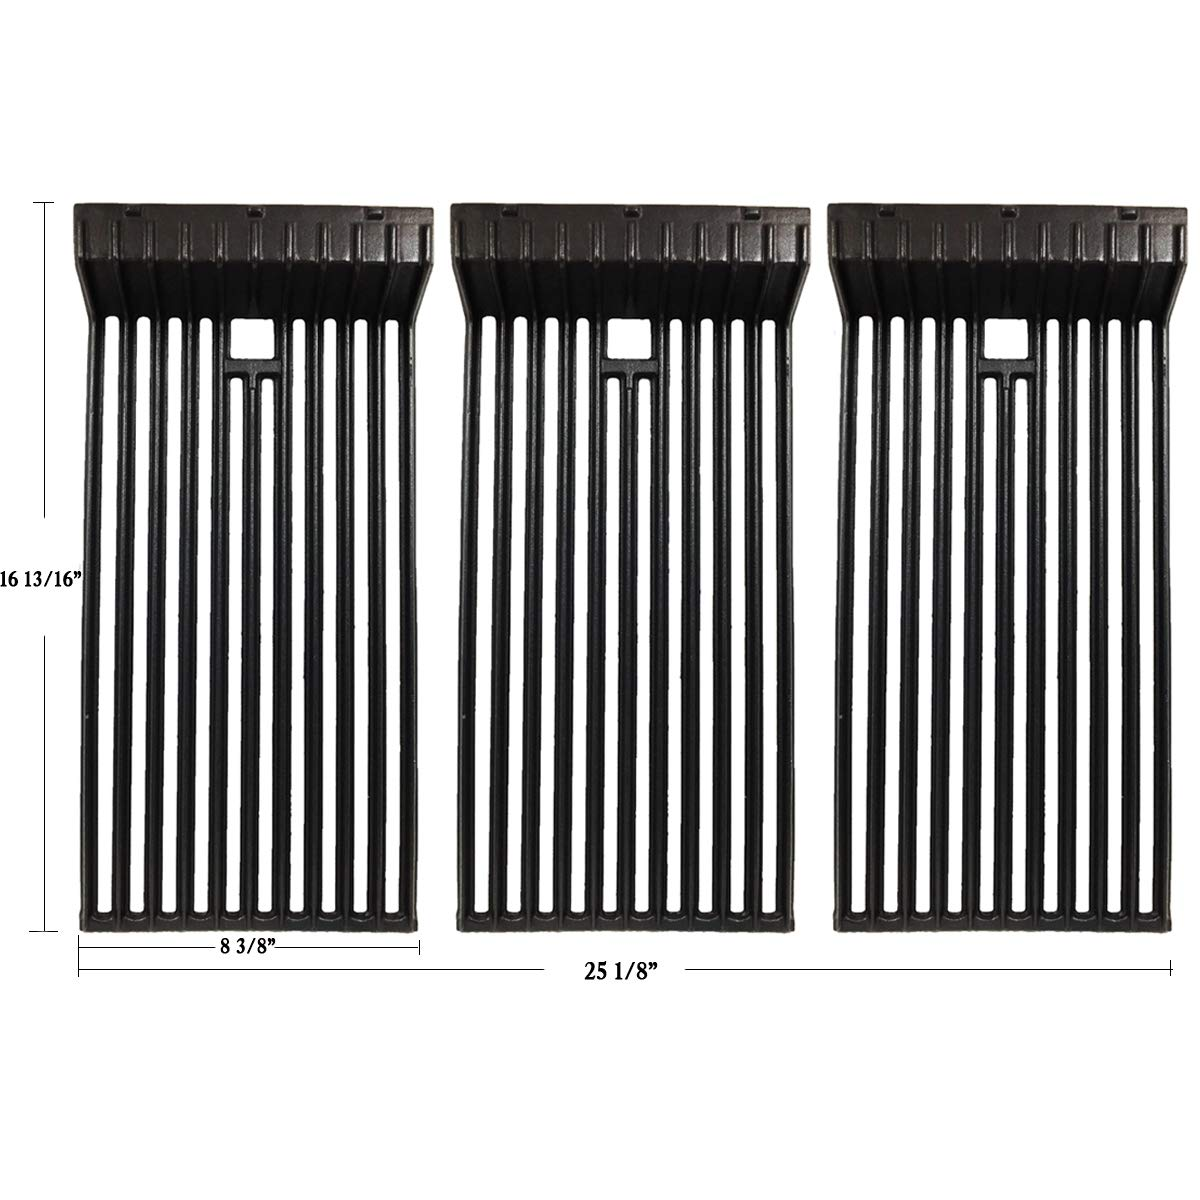 Hisencn Matte Porcelain Coated Cast Iron Gas Grill Cooking Grid Grates Replacement Parts for Broilmaster D3, Broilmaster P3, G3, S3, U3 Gas Grills